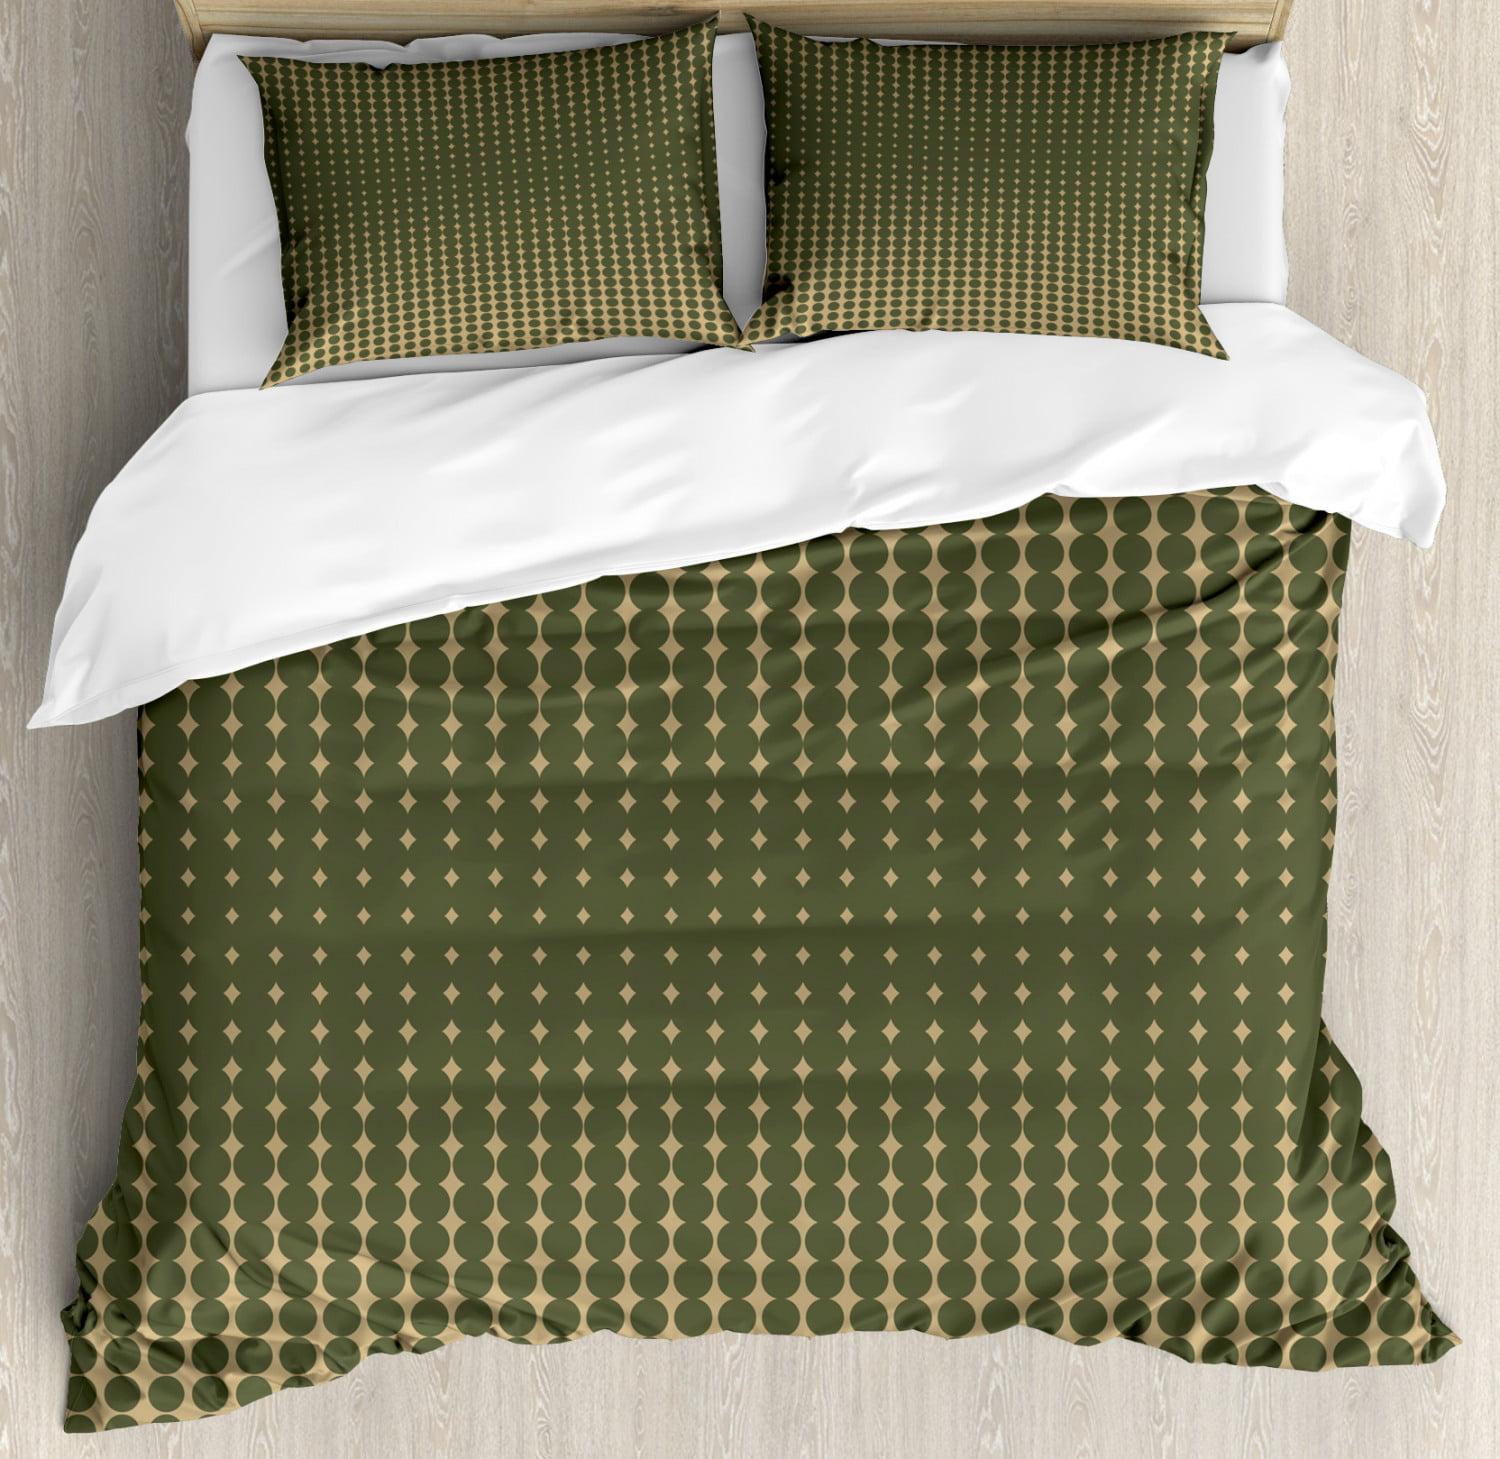 Olive Green Duvet Cover Set Abstract Dotted Halftone Design